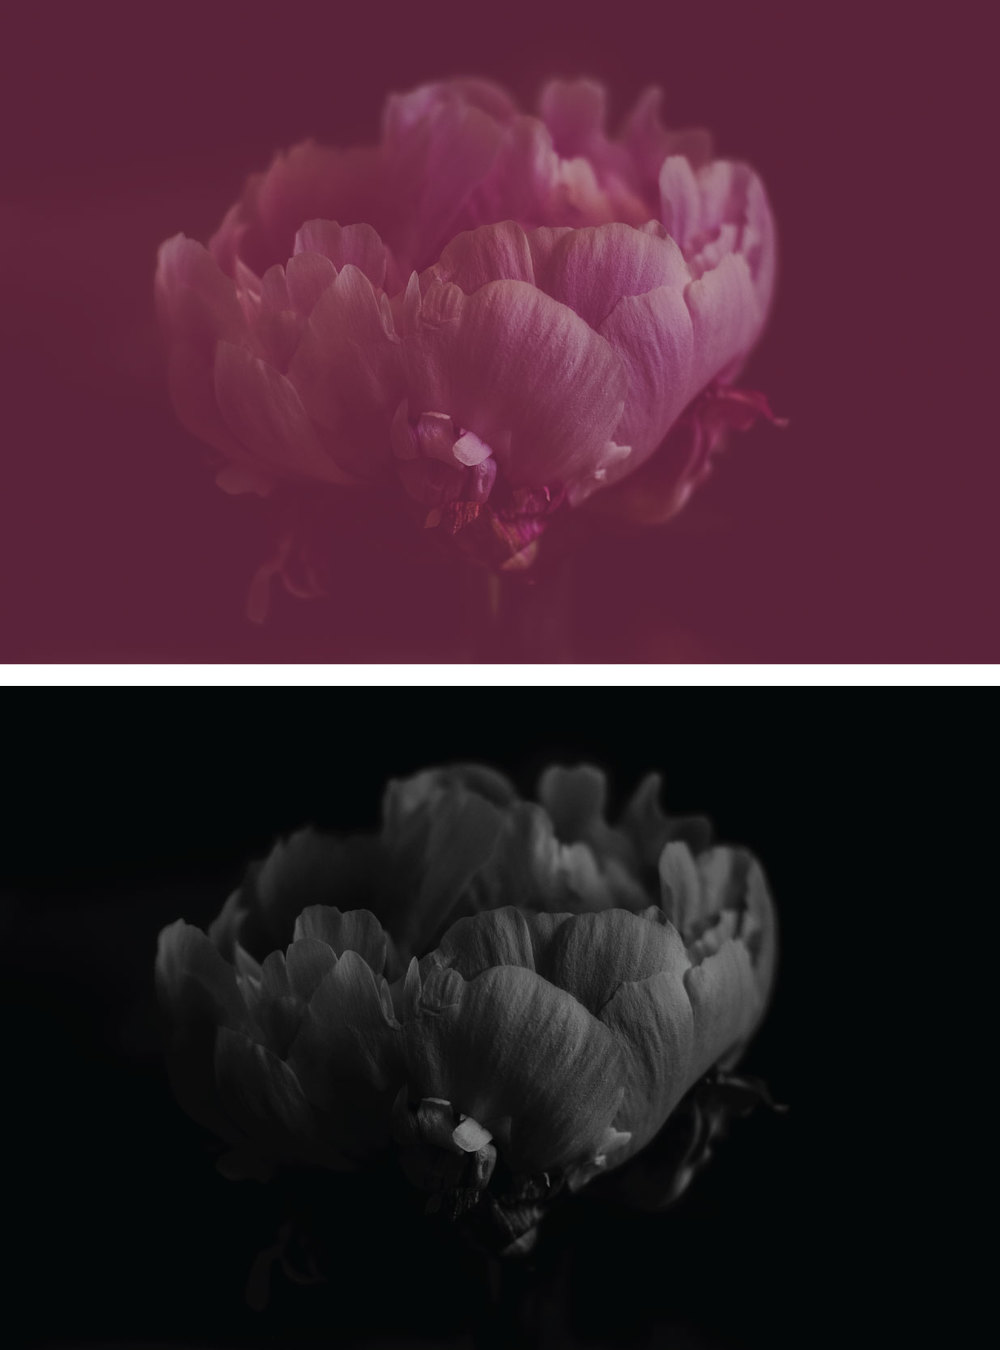 peonies, peony flowers, flower photography, peony, black and white, rose colored photo, pretty presets